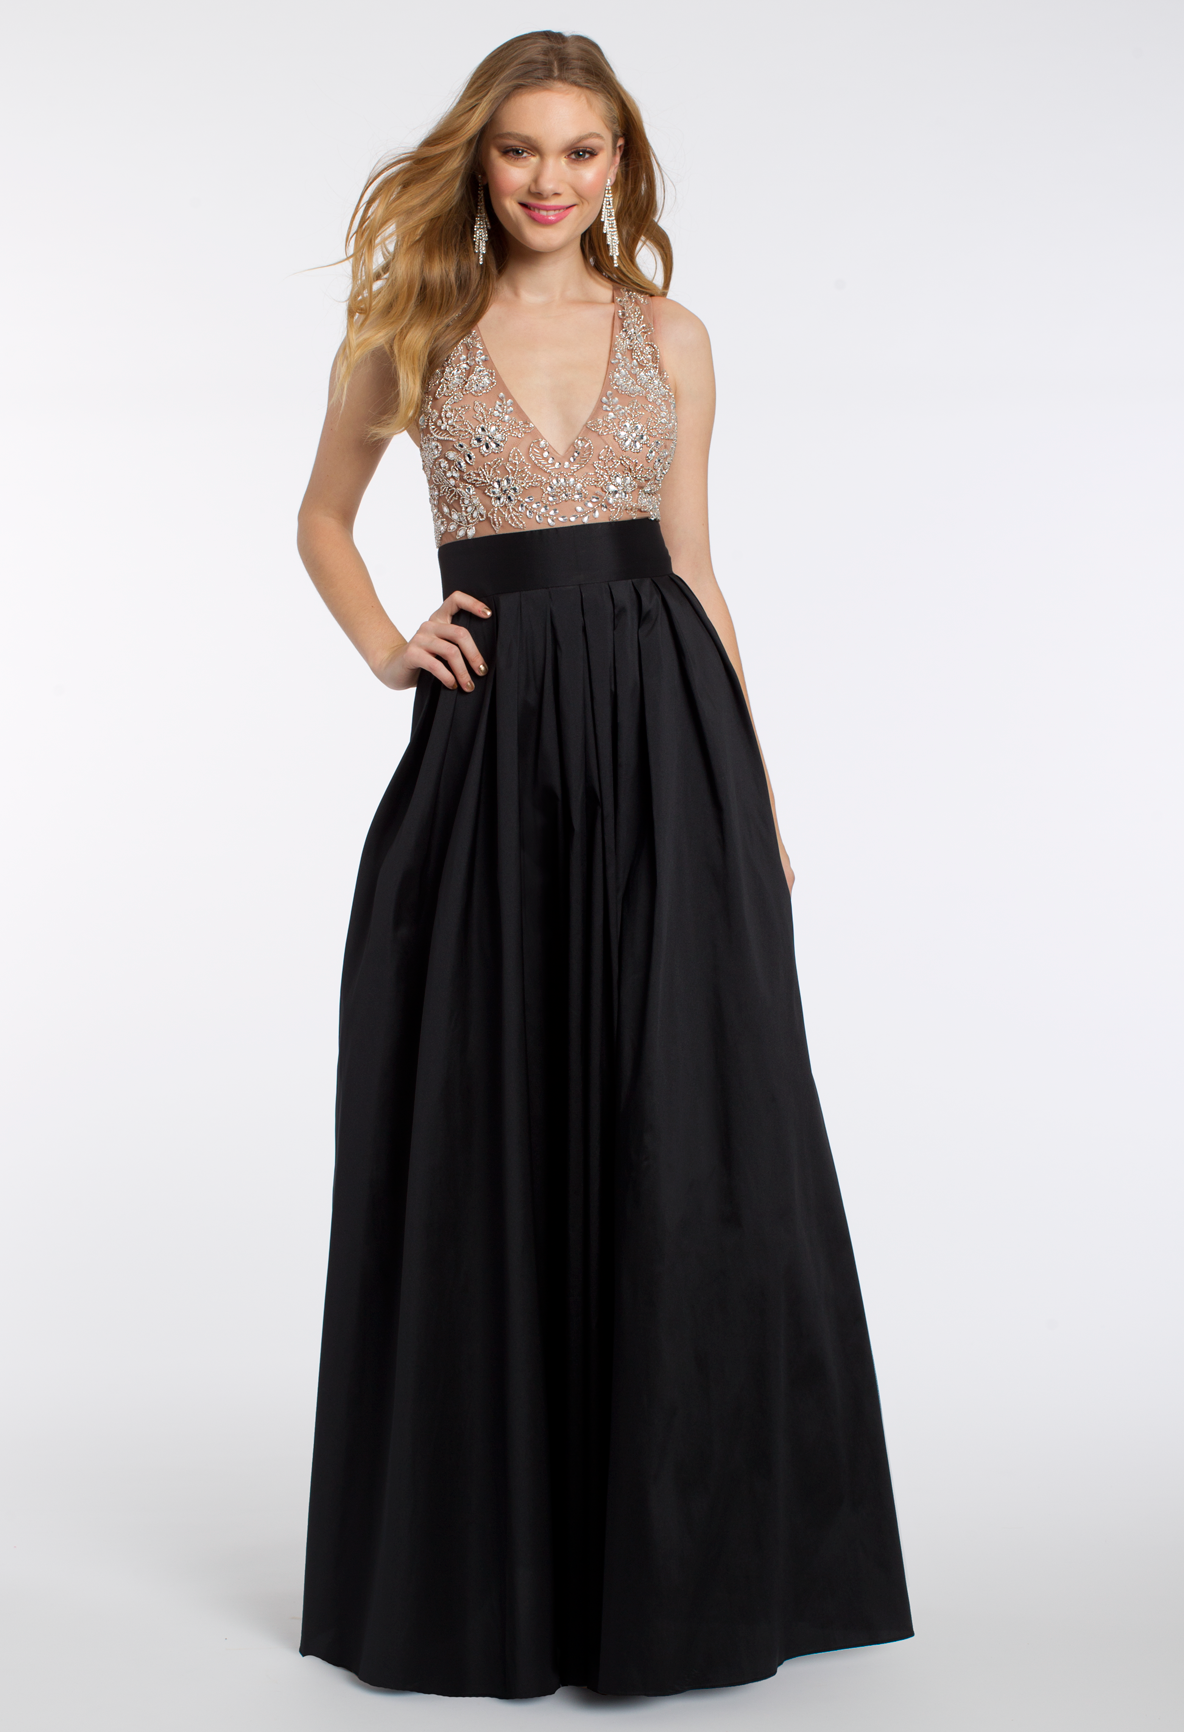 Go For Sophistication With This Ball Gown Dress The Beaded Neckline Ball Gown Style And Illusion Back Make Thi Chic Cocktail Dress Ball Gown Dresses Dresses [ 1732 x 1184 Pixel ]